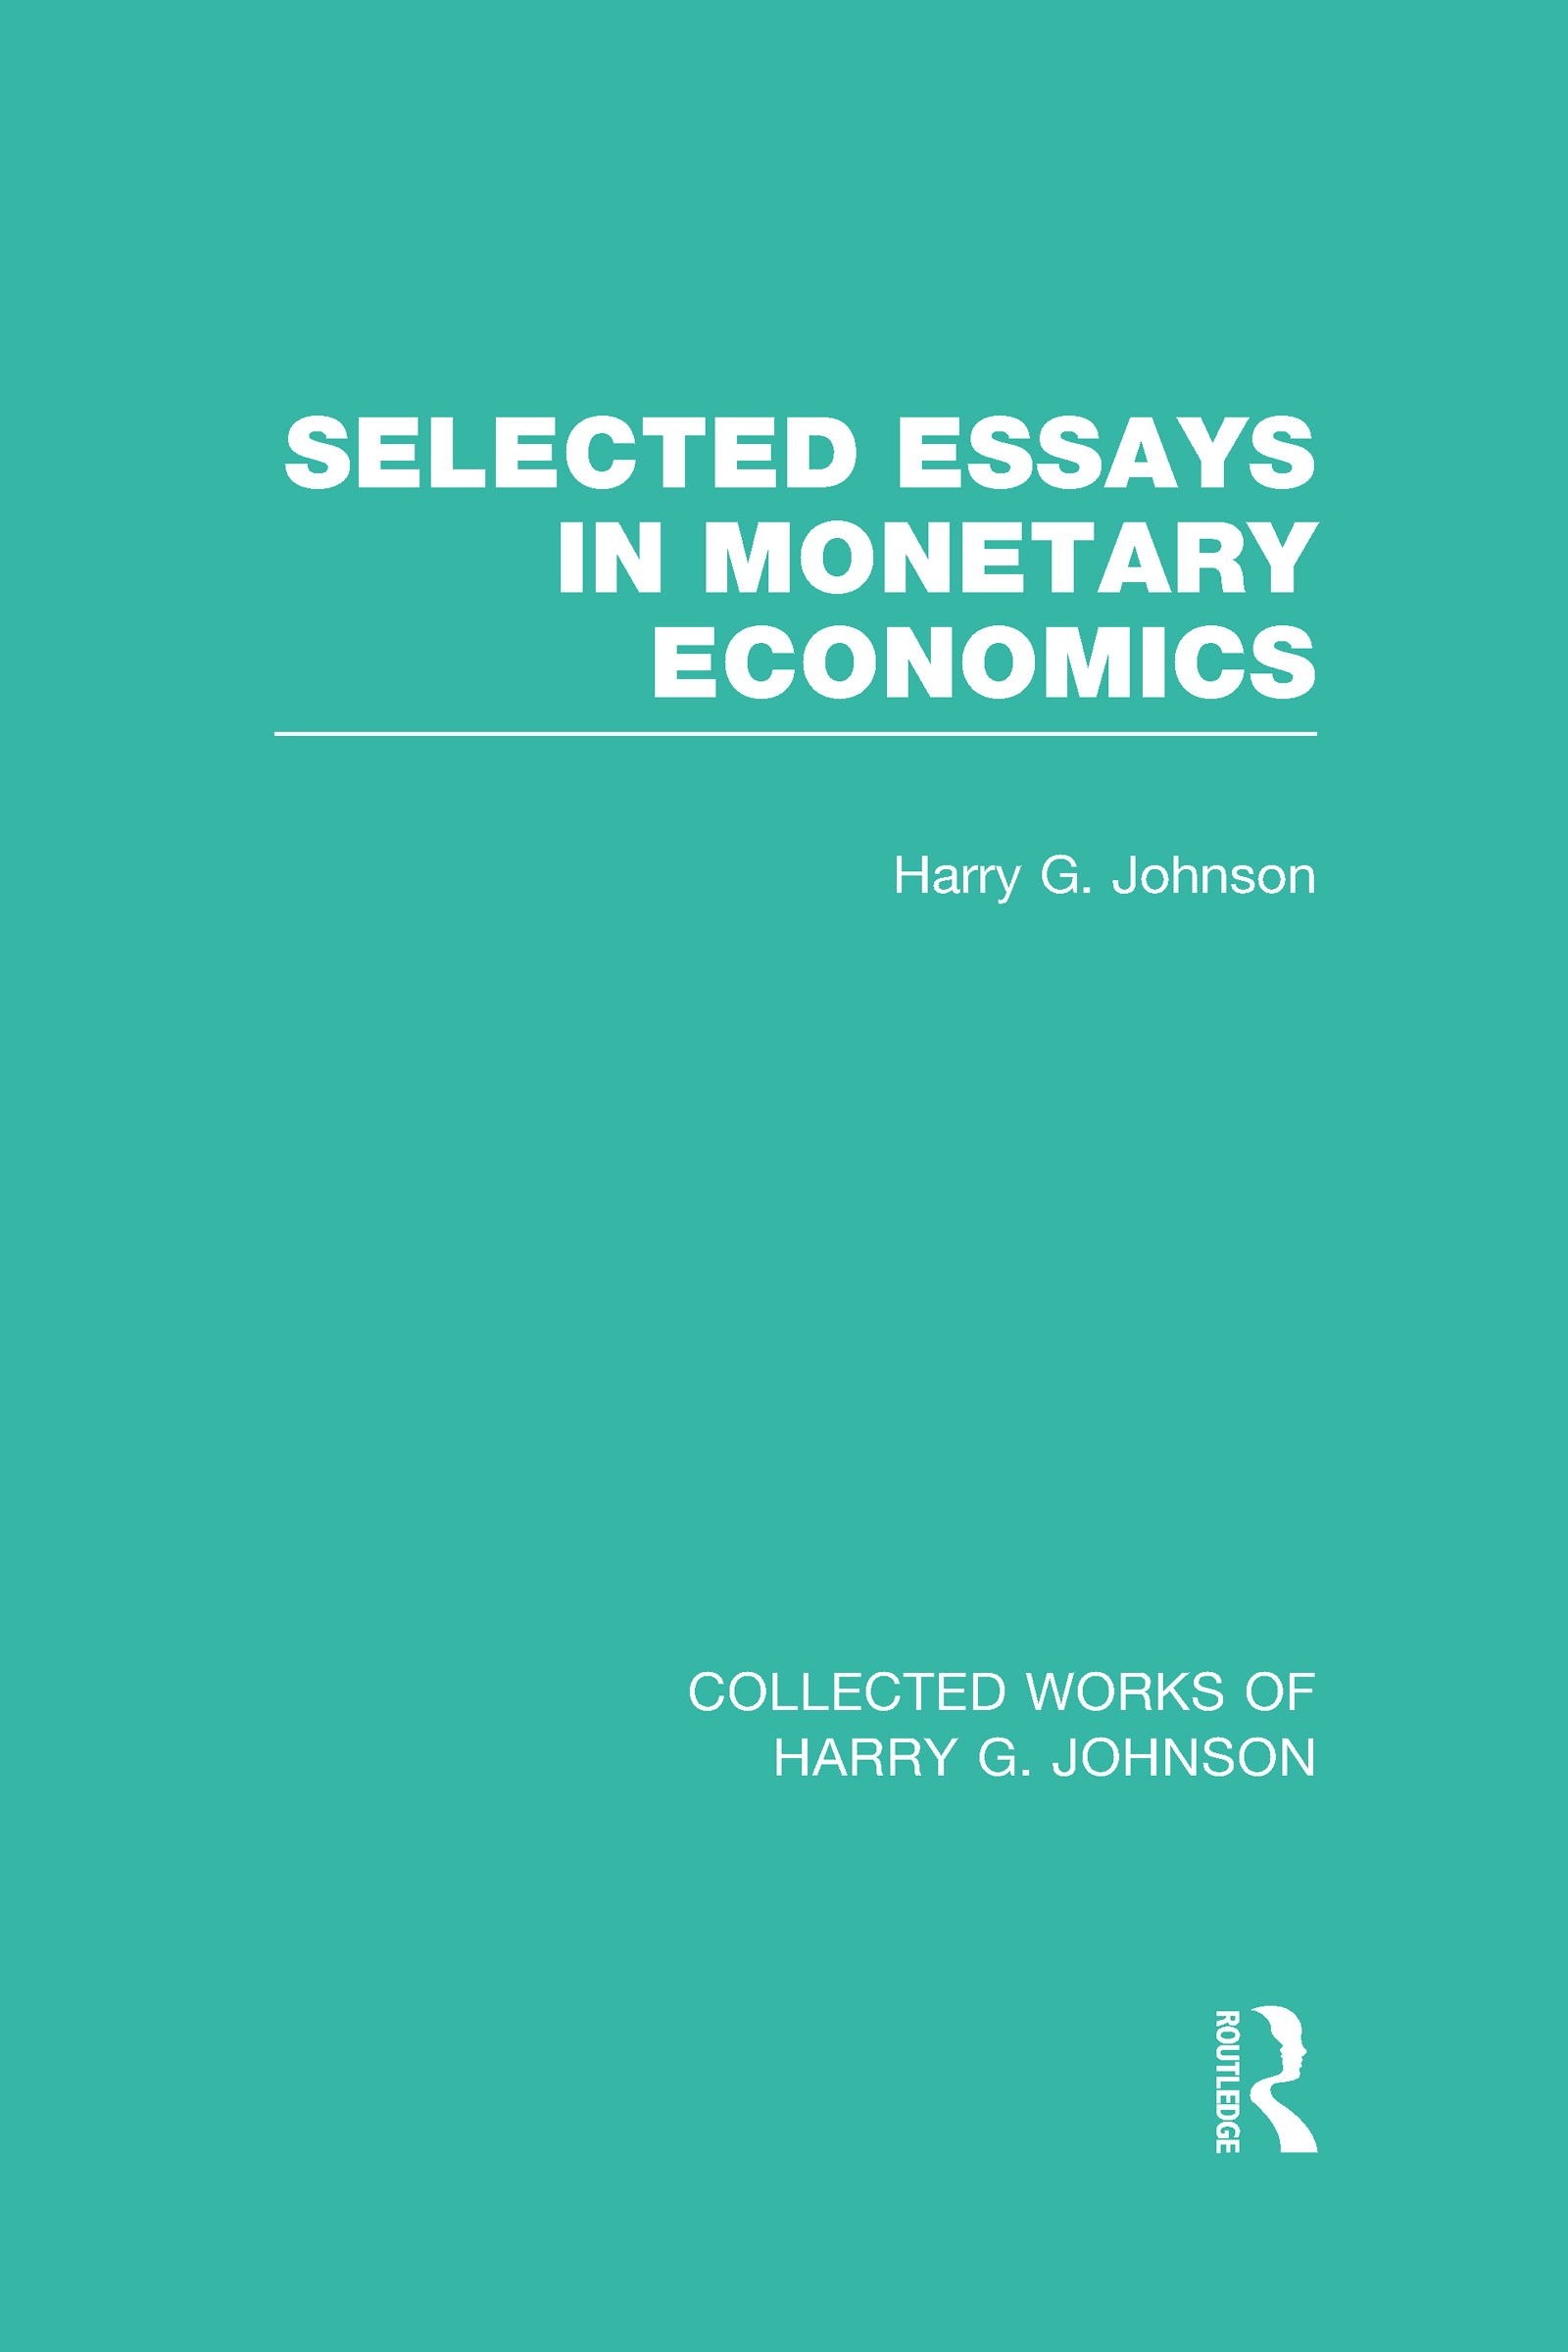 Selected Essays in Monetary Economics (Collected Works of Harry Johnson) book cover